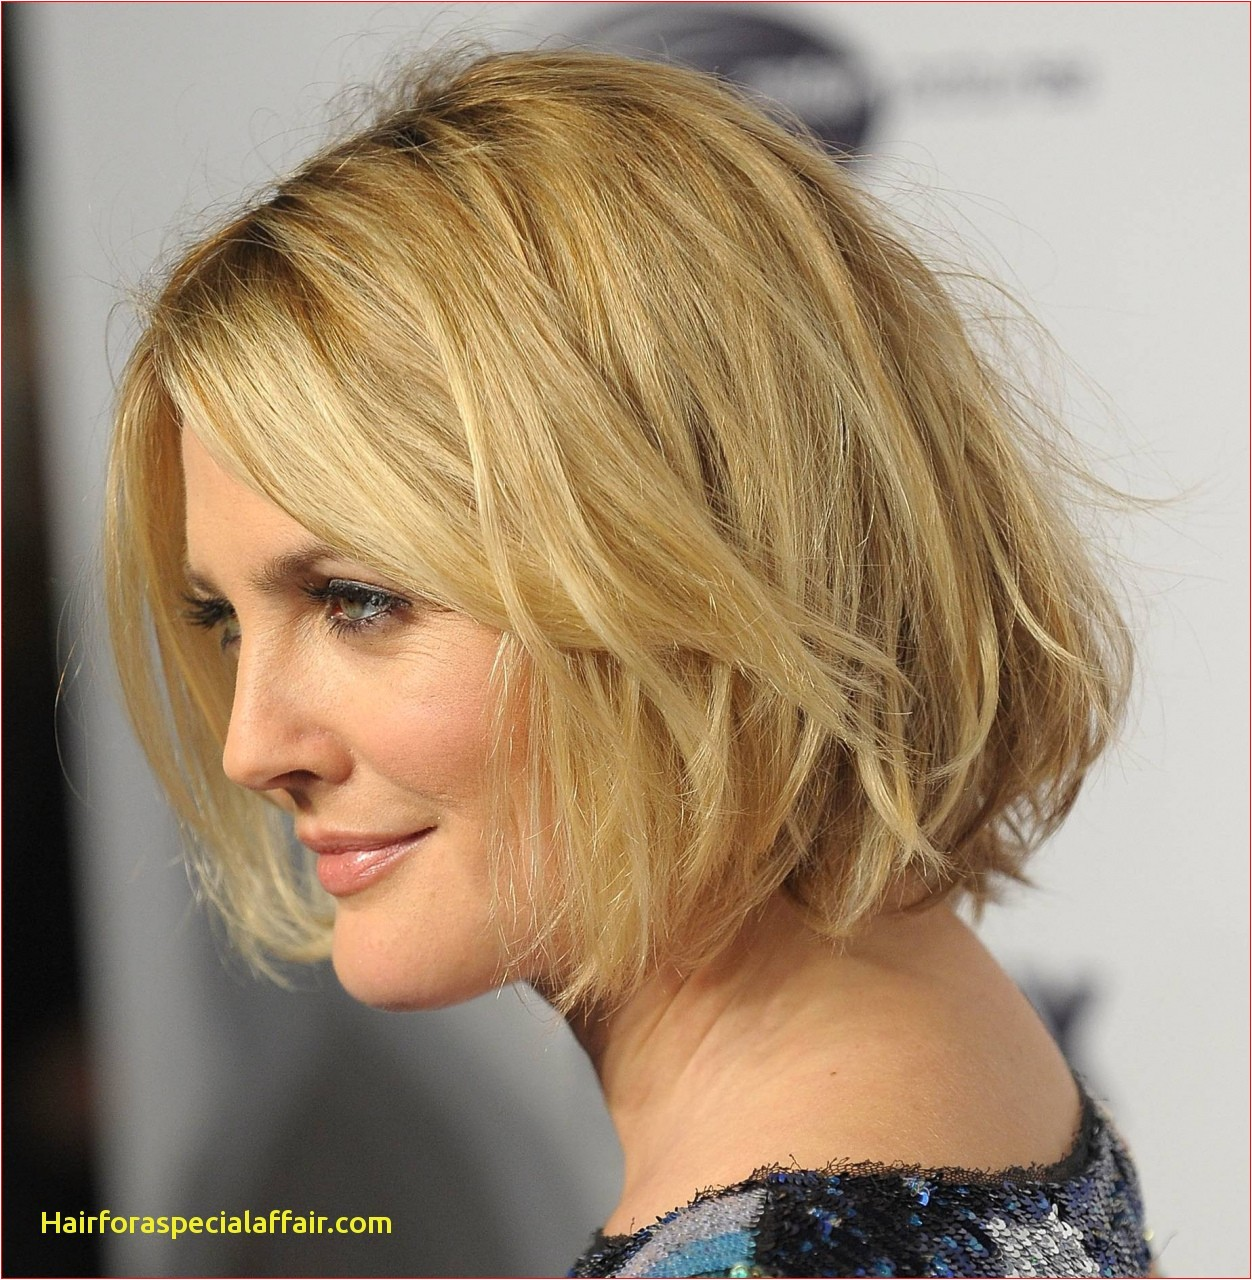 77 Good Hairstyles for Long Hair New Medium Length Bob Hairstyles New I Pinimg 1200x 0d